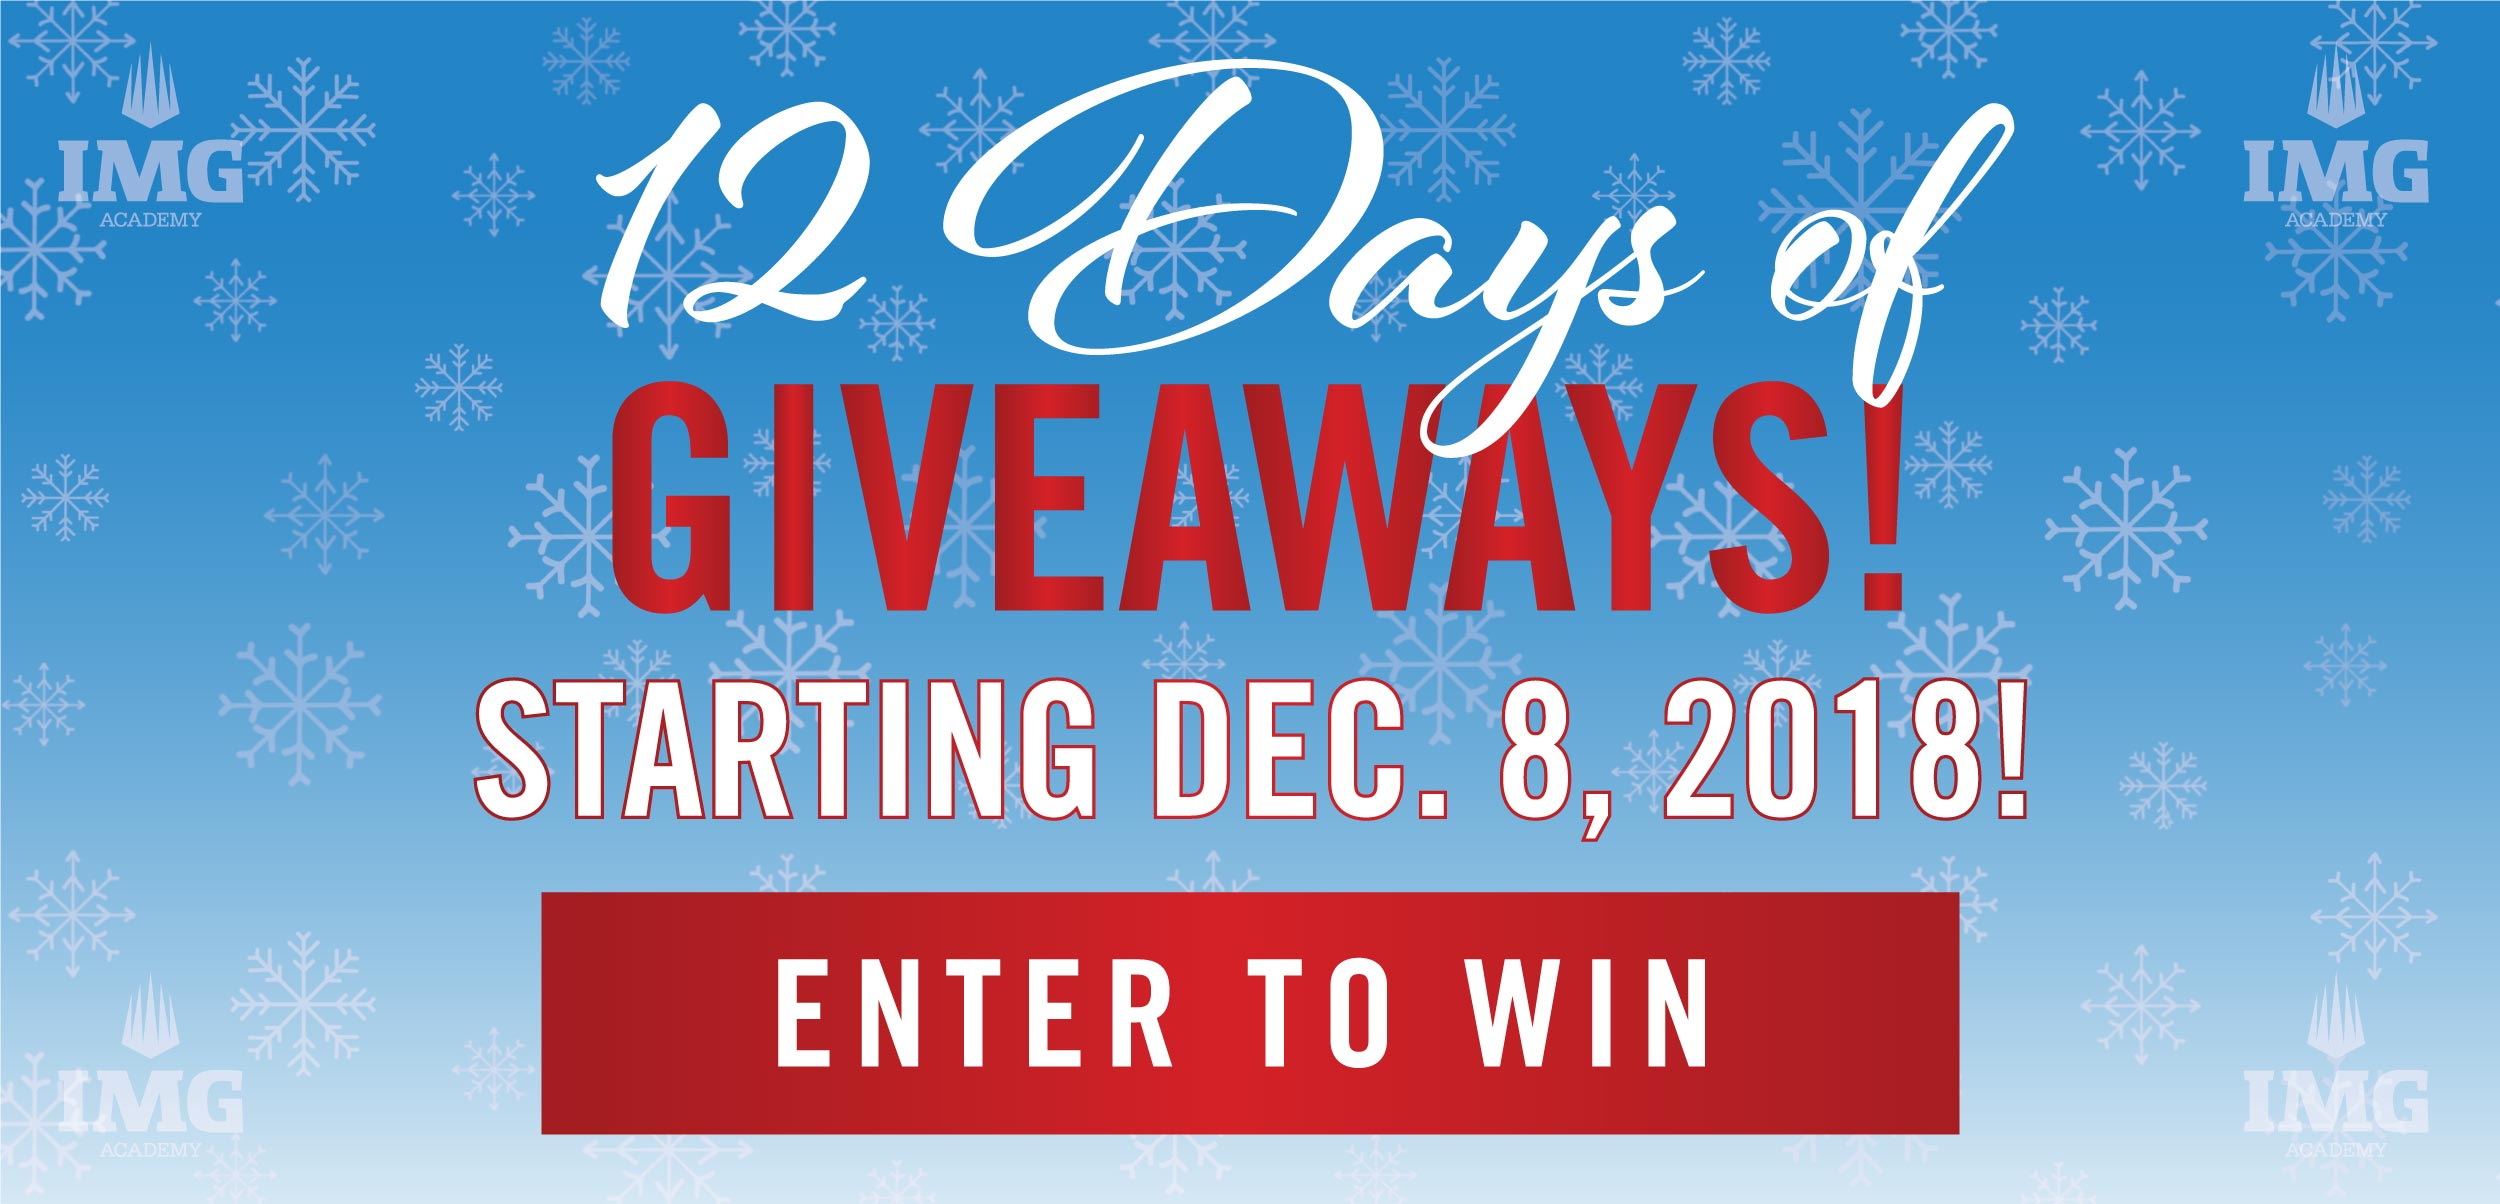 Enter to Win 12 Days of Giveaways